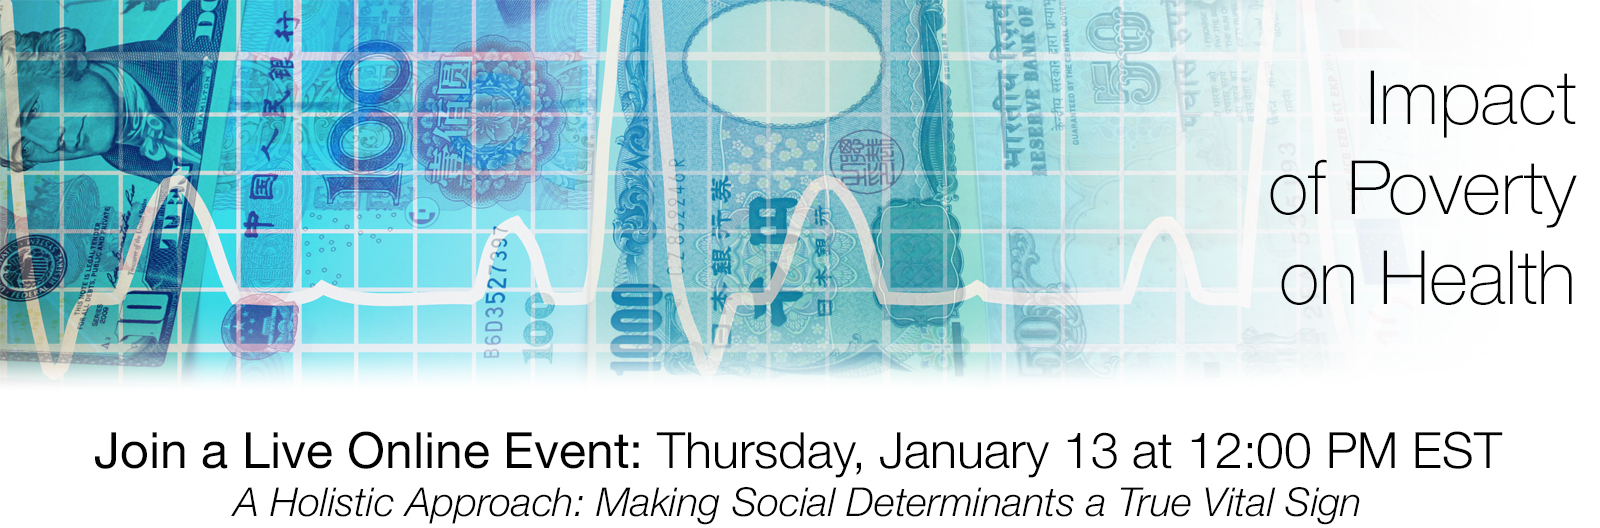 Join a Live Online Event: Thursday January 13 at 12:00 PM EST